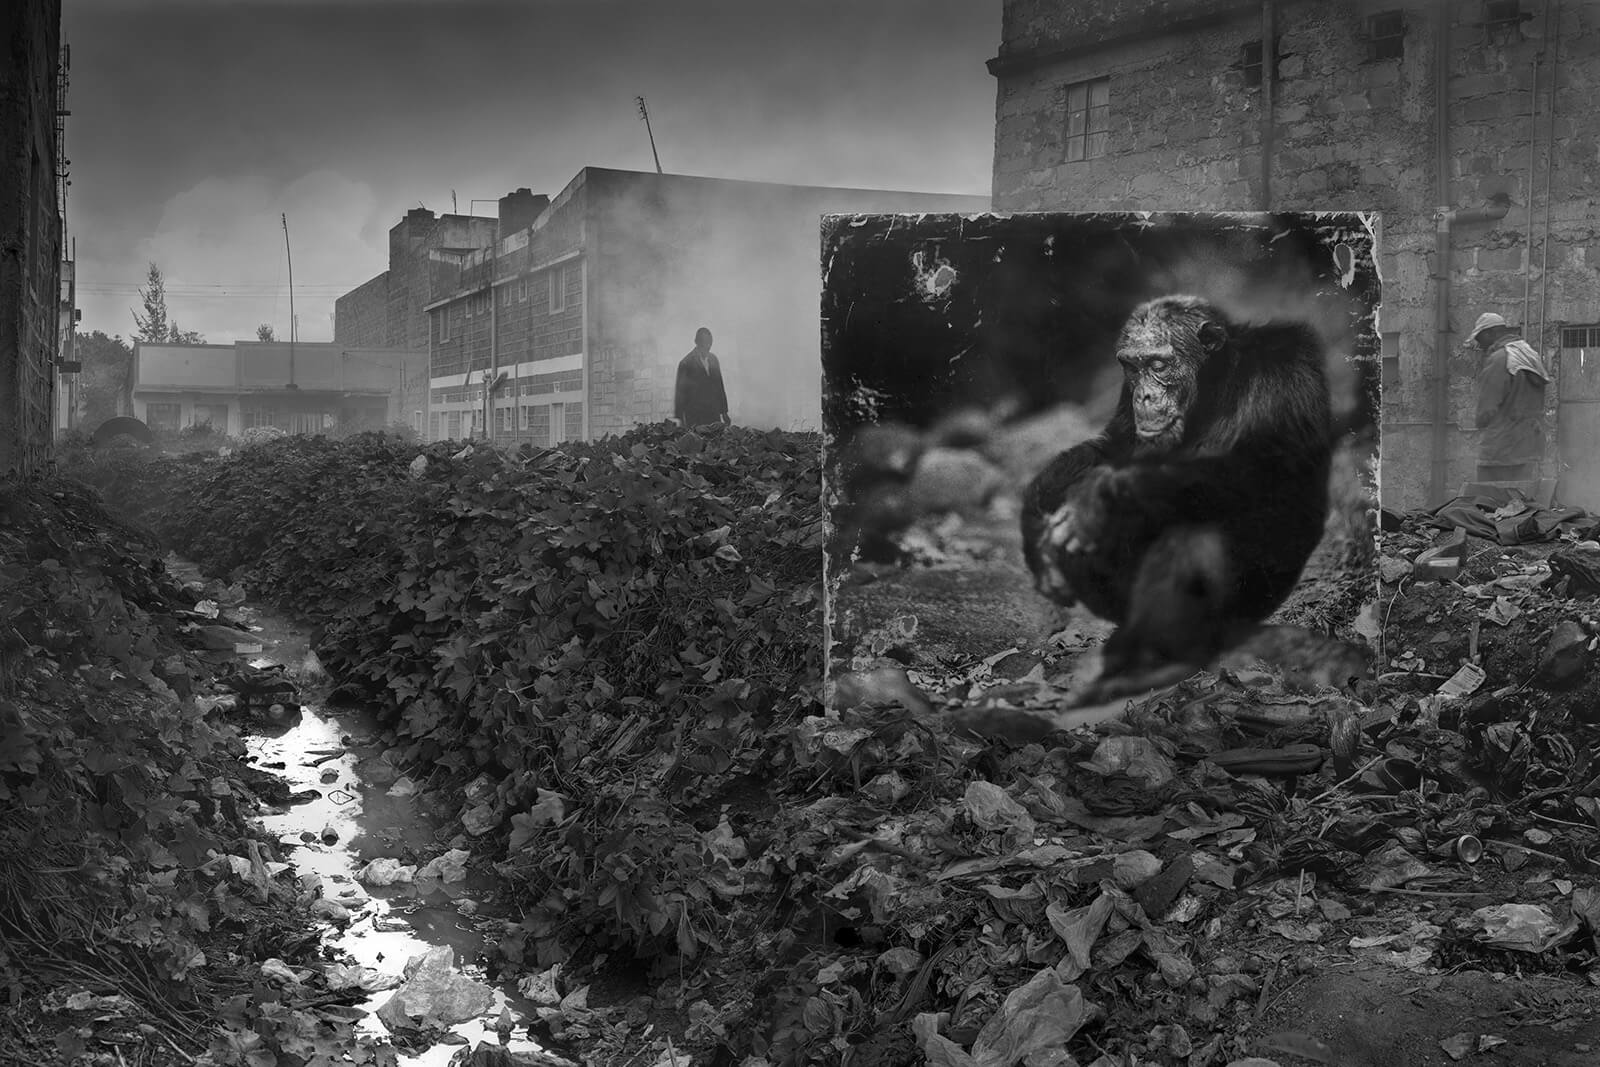 Alleyway with Chimpanzee (Photo by Nick Brandt)